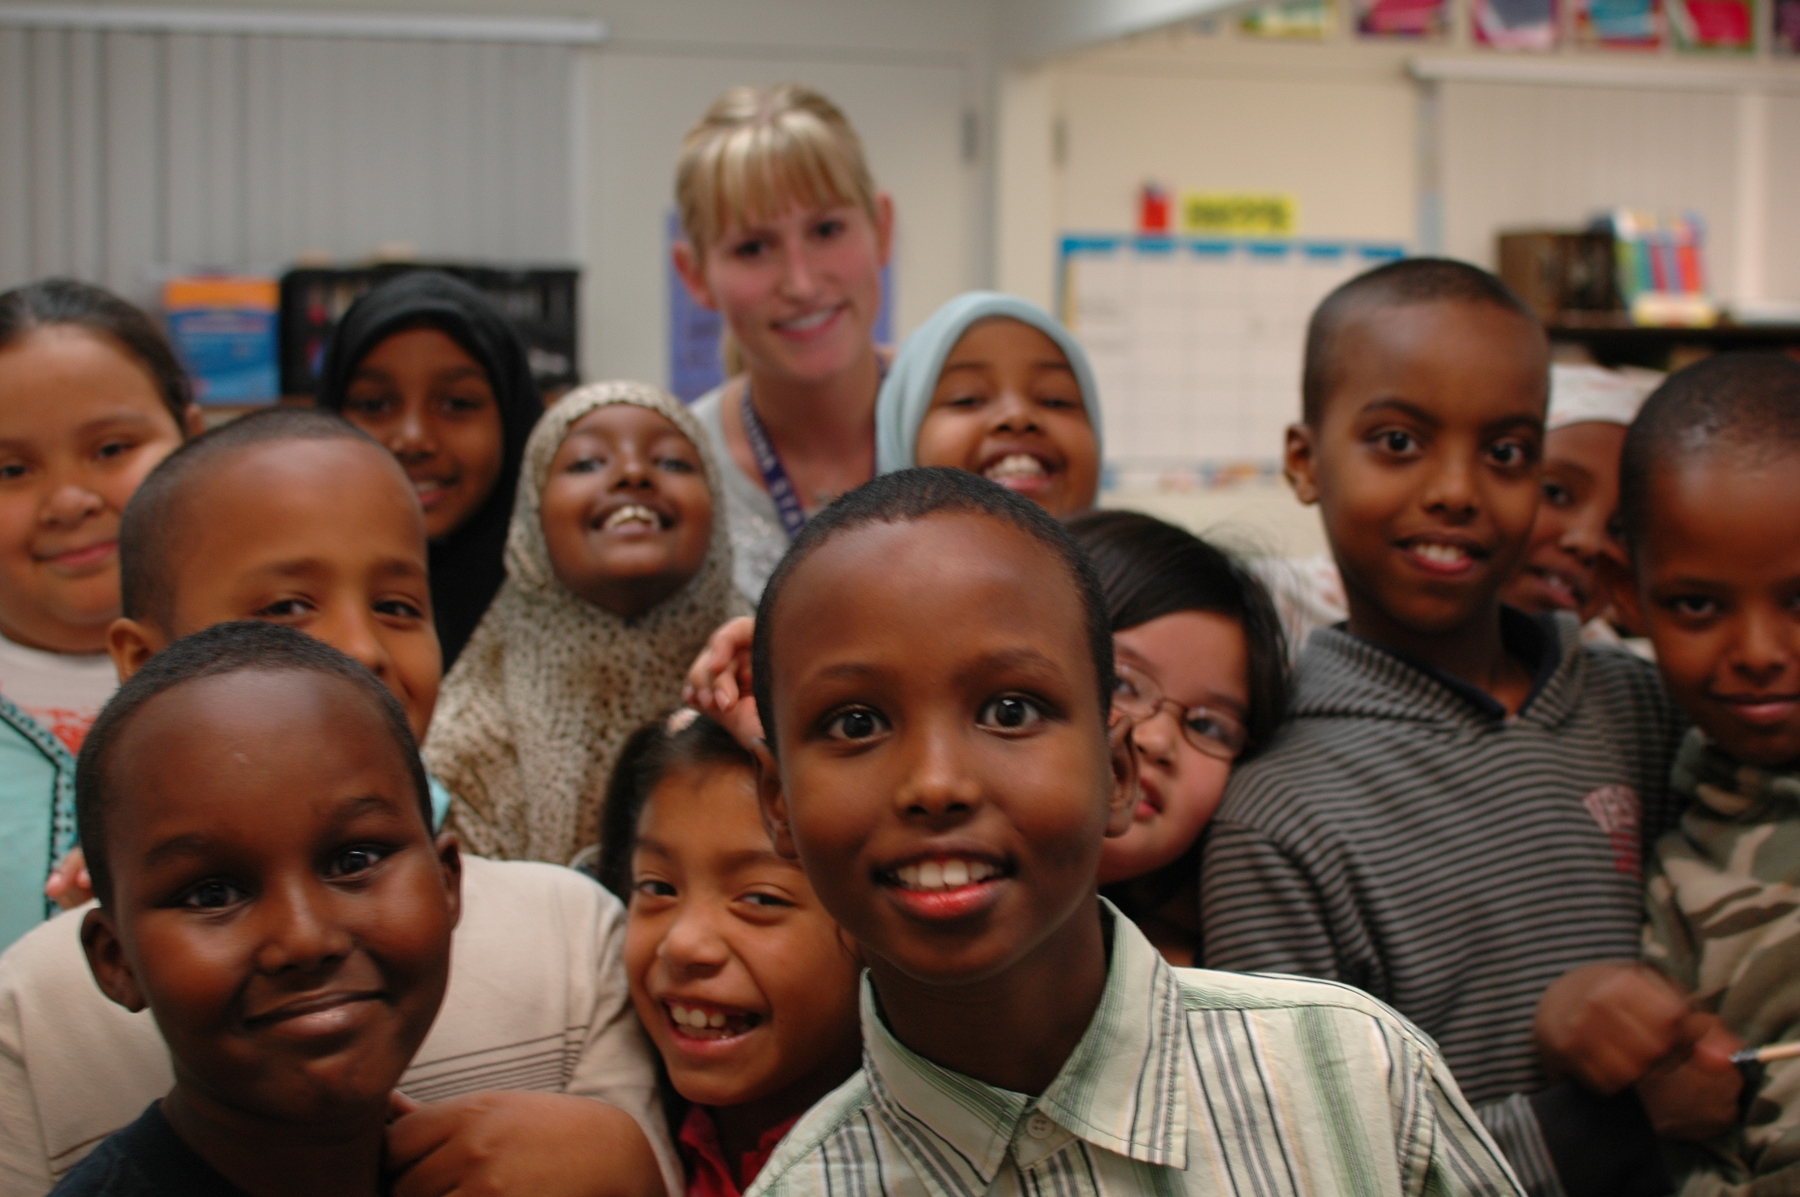 Fourth-graders from Cedar Riverside Community School vie for the camera's attention. Photos by Karen Hollish.